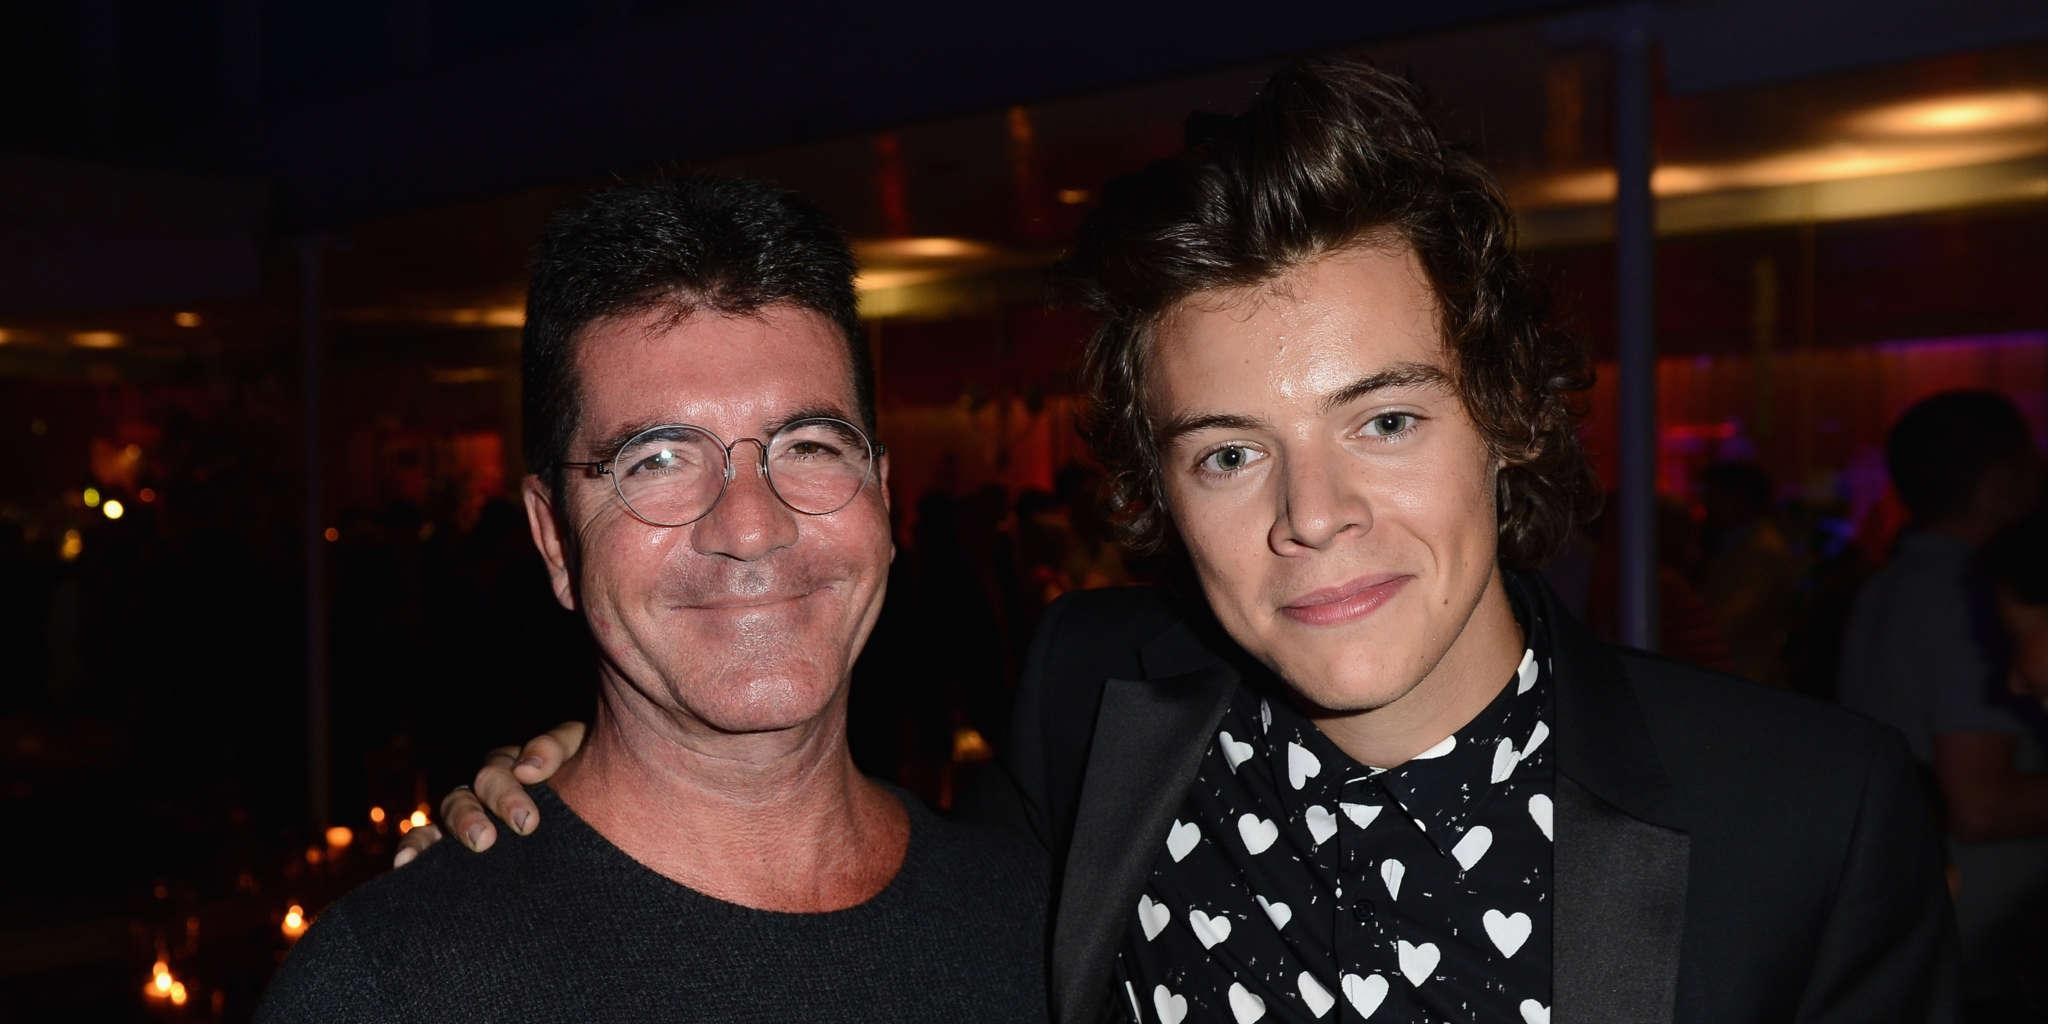 Simon Cowell Reacts To Harry Styles' Choice To 'Respectfully Decline' The Prince Eric Role Offer In The 'Little Mermaid' Live-Action Remake